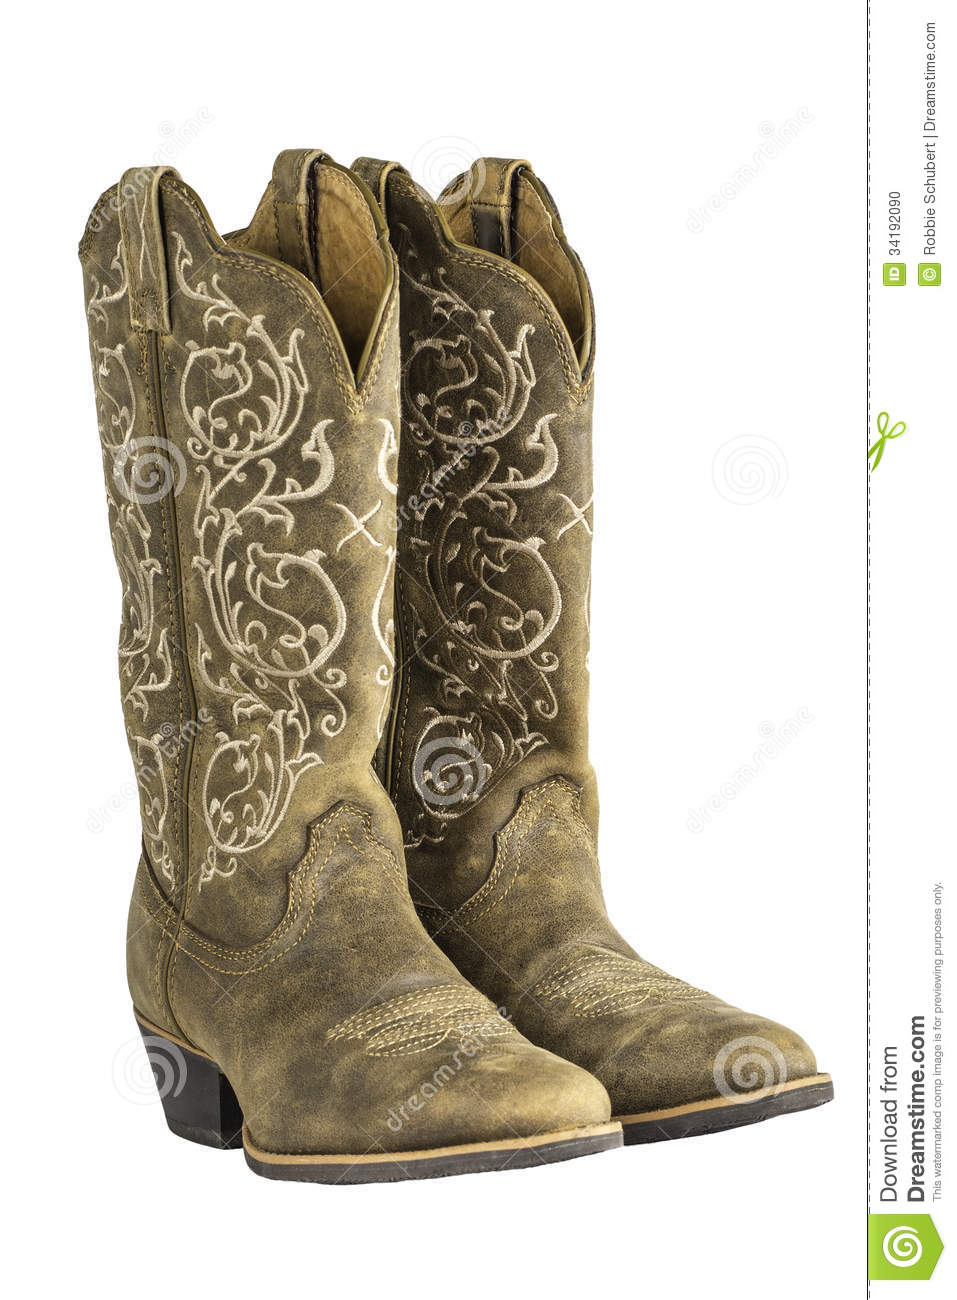 Ladies Brown Western Cowboy Boots Stock Photo - Image: 34192090